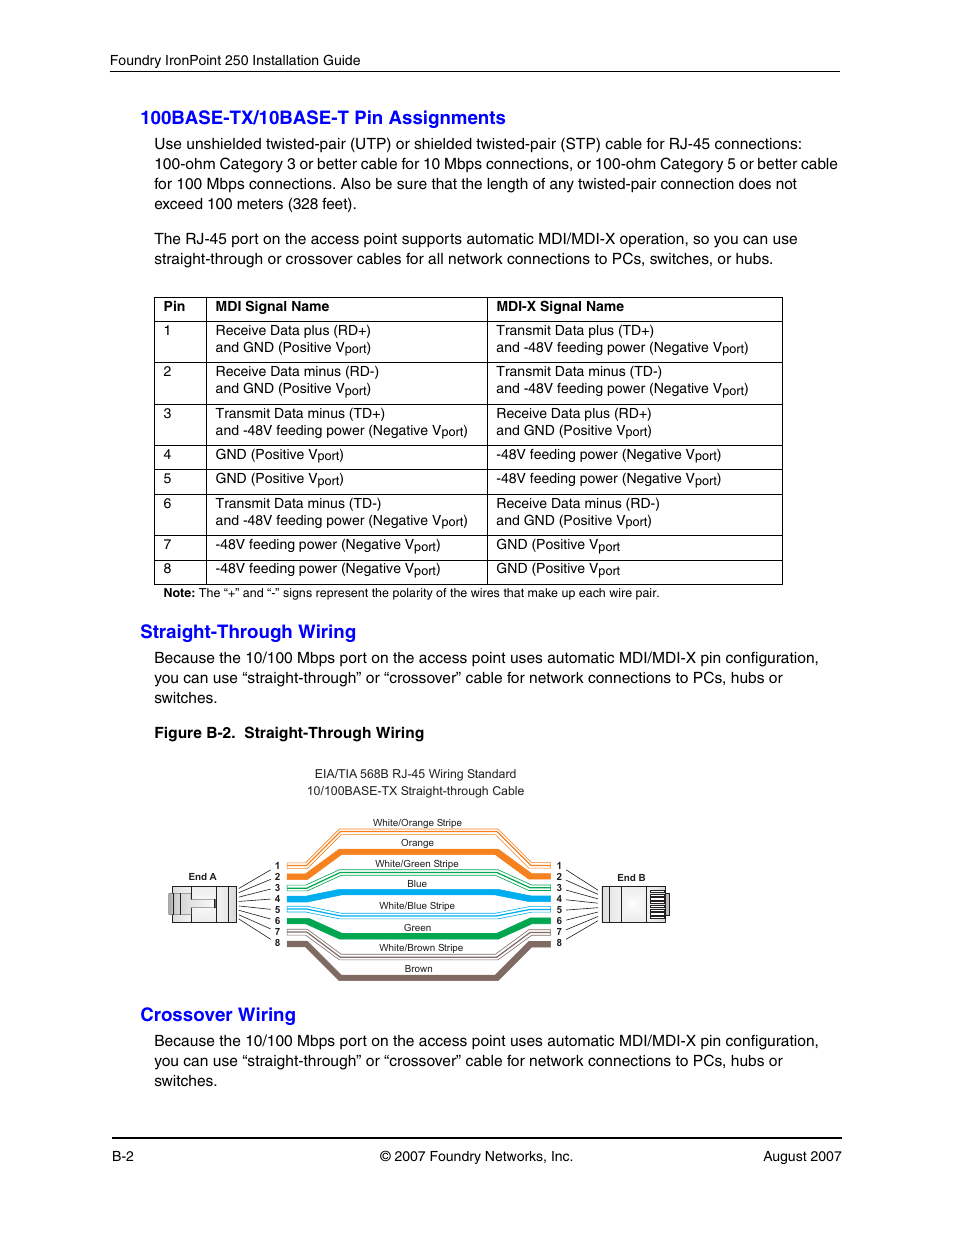 hight resolution of 100base tx 10base t pin assignments straight through wiring crossover wiring foundry networks ironpoint 250 user manual page 46 64